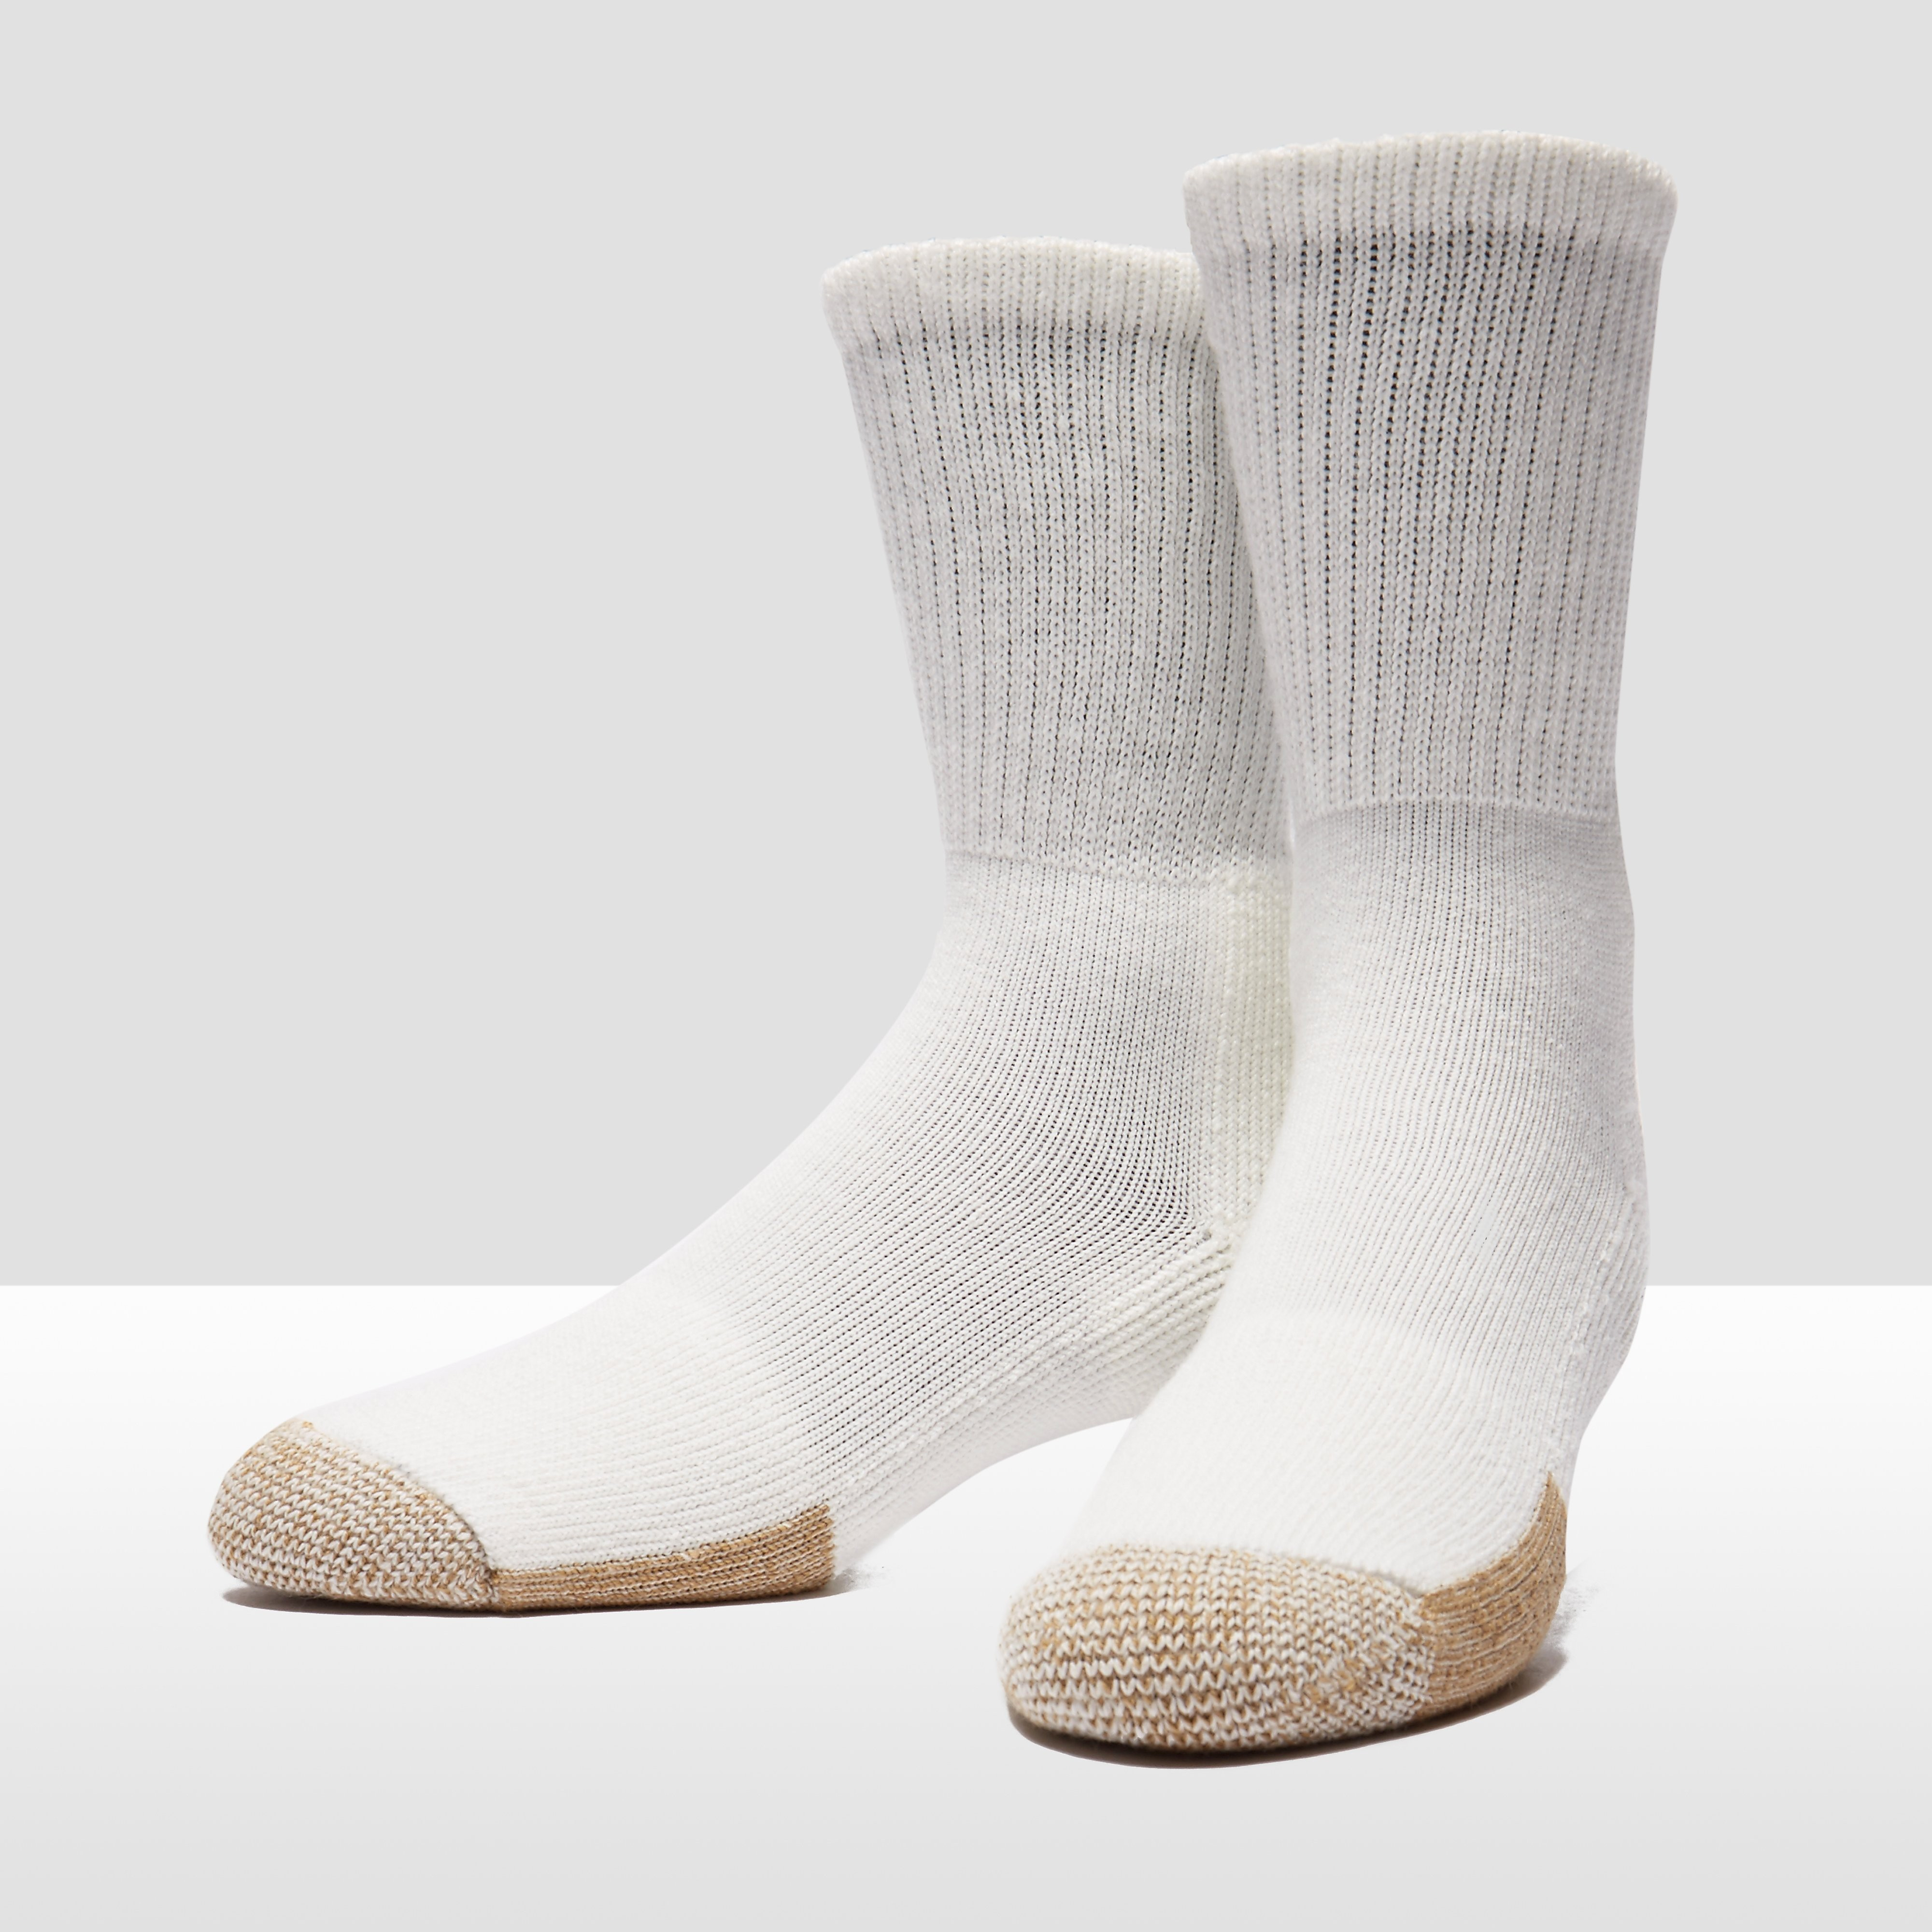 Thorlo THICK CUSHION Tennis Sock